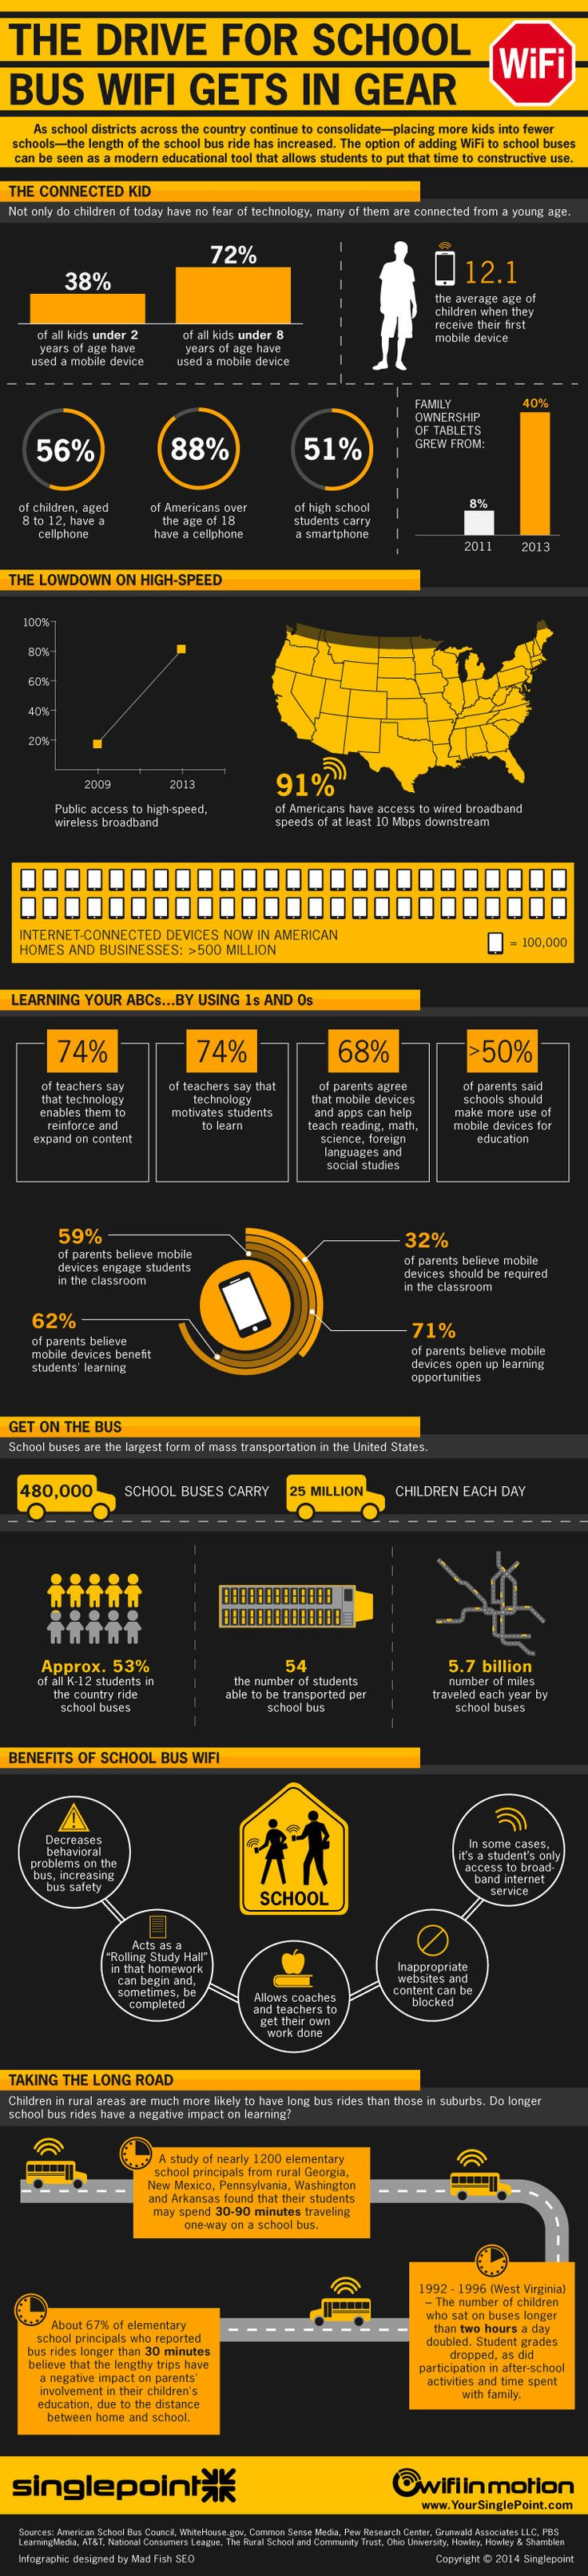 The Drive for School Bus Wifi Gets in Gear #infographic